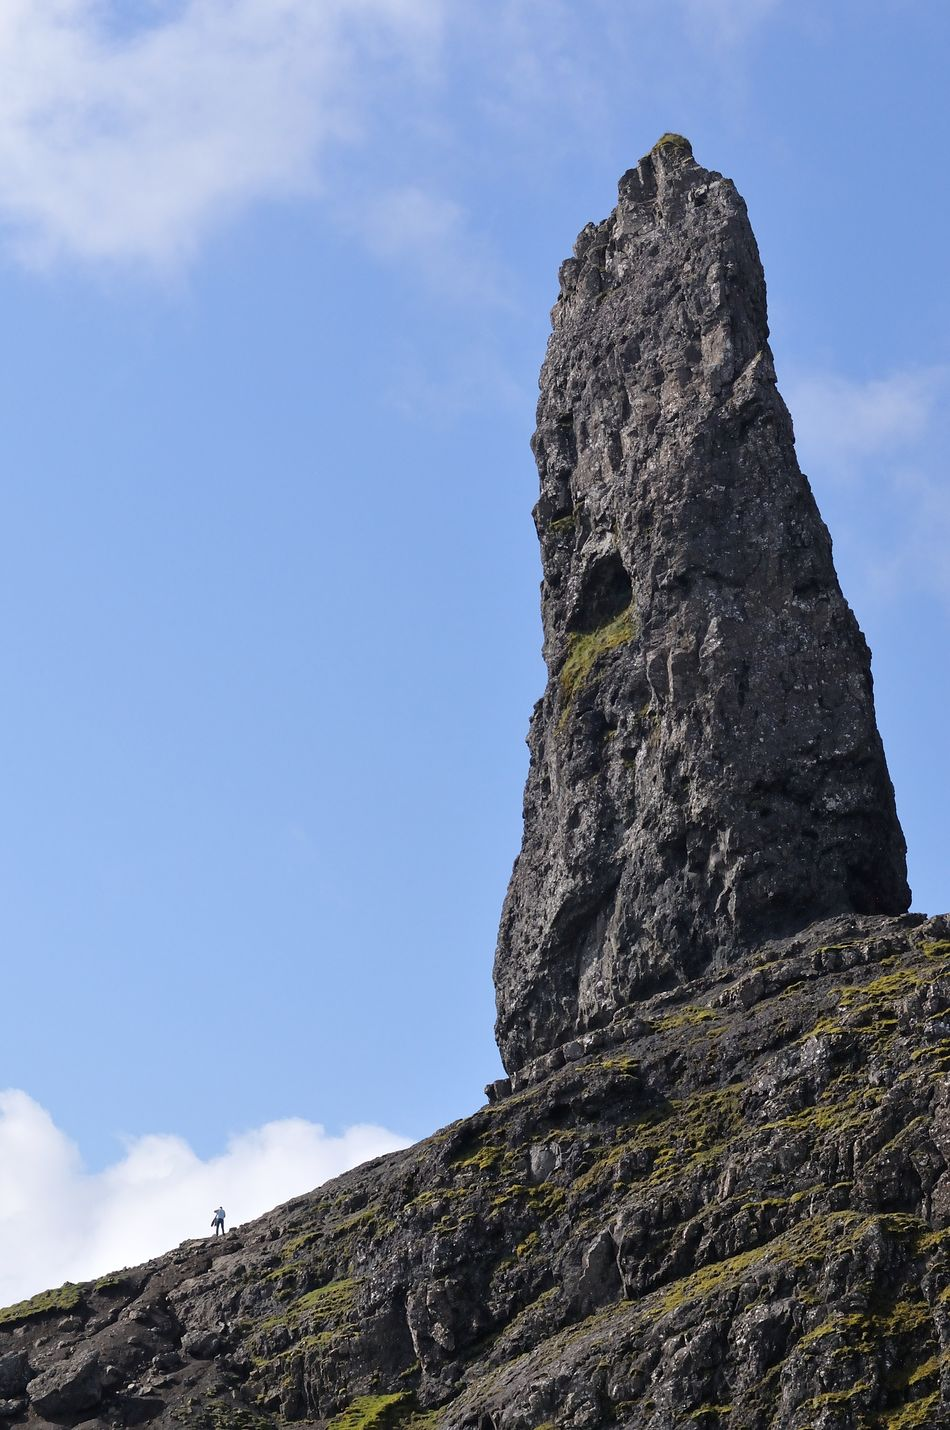 The Old Man of Storr, Isle of Skye Beauty In Nature Blue Geology Highlands Low Angle View Mountain Non-urban Scene Outdoors Remote Rock Rock - Object Rock Formation Rocky Mountains Scotland Sky Skye Storr